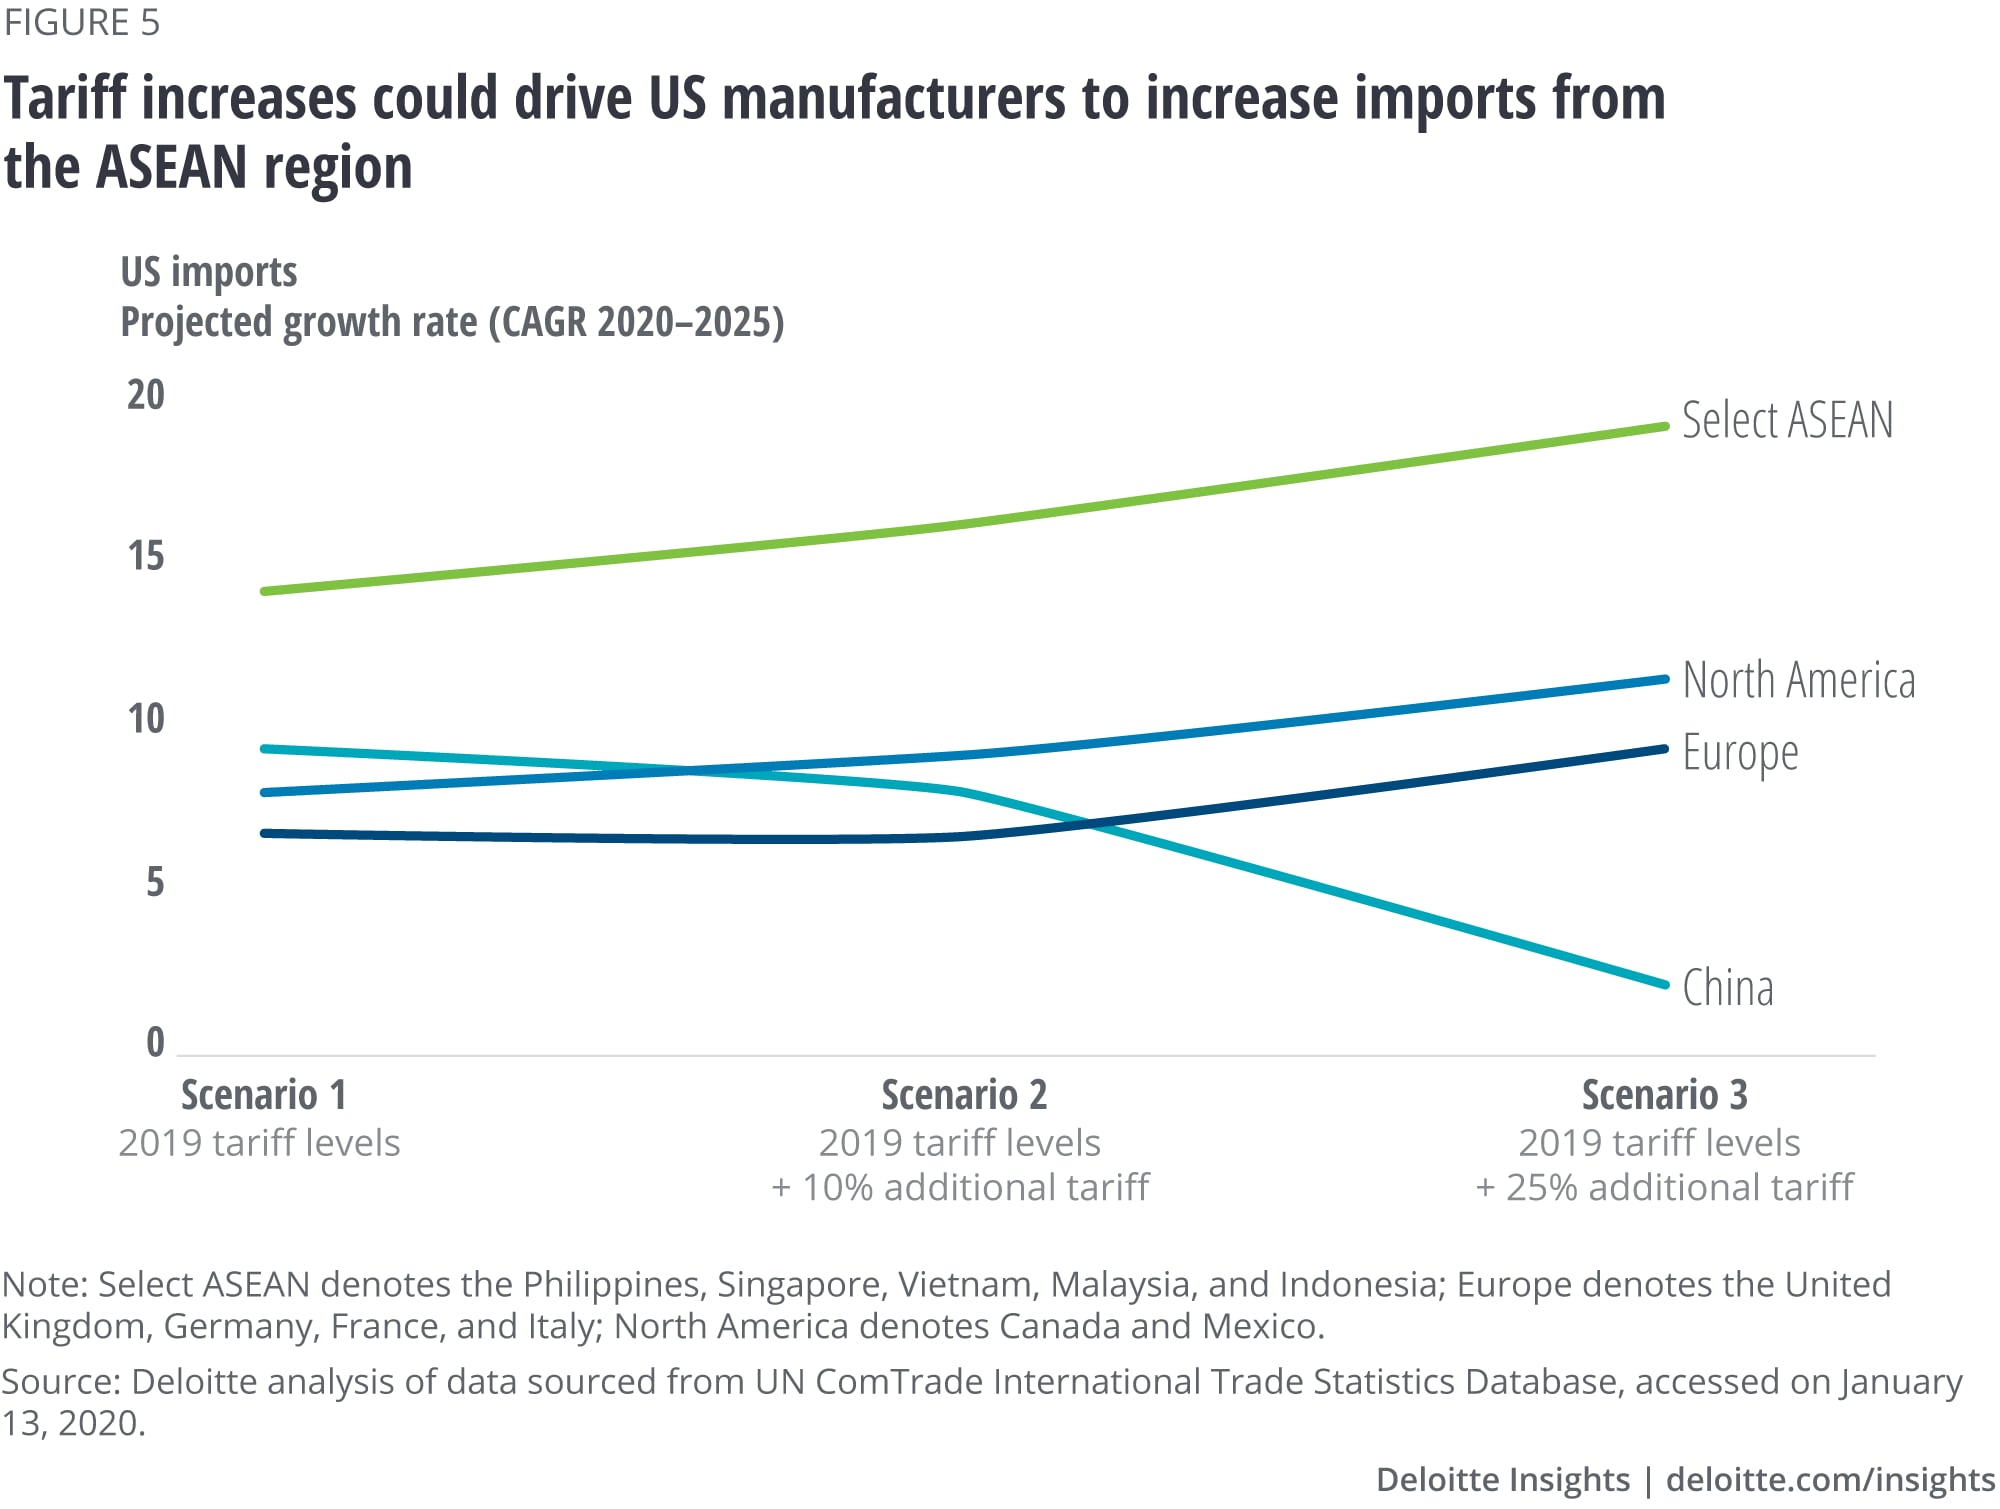 Tariff increases could drive US manufacturers to increase imports from the ASEAN region